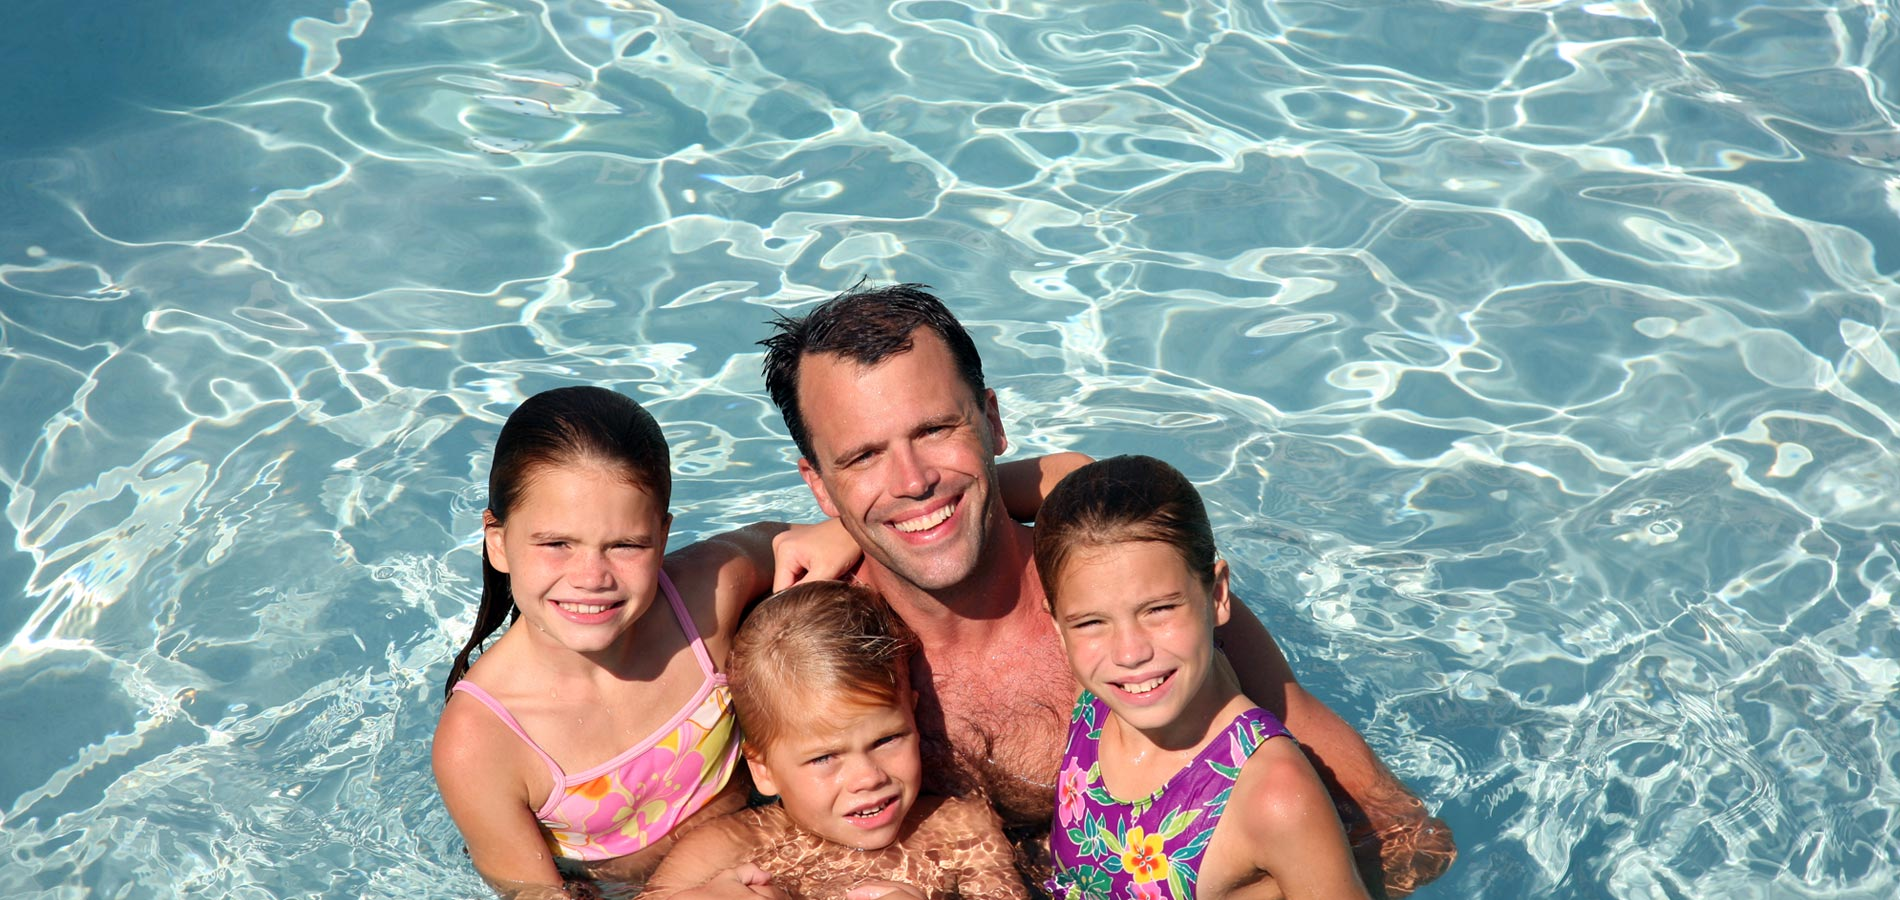 Family swimming at Noctaee